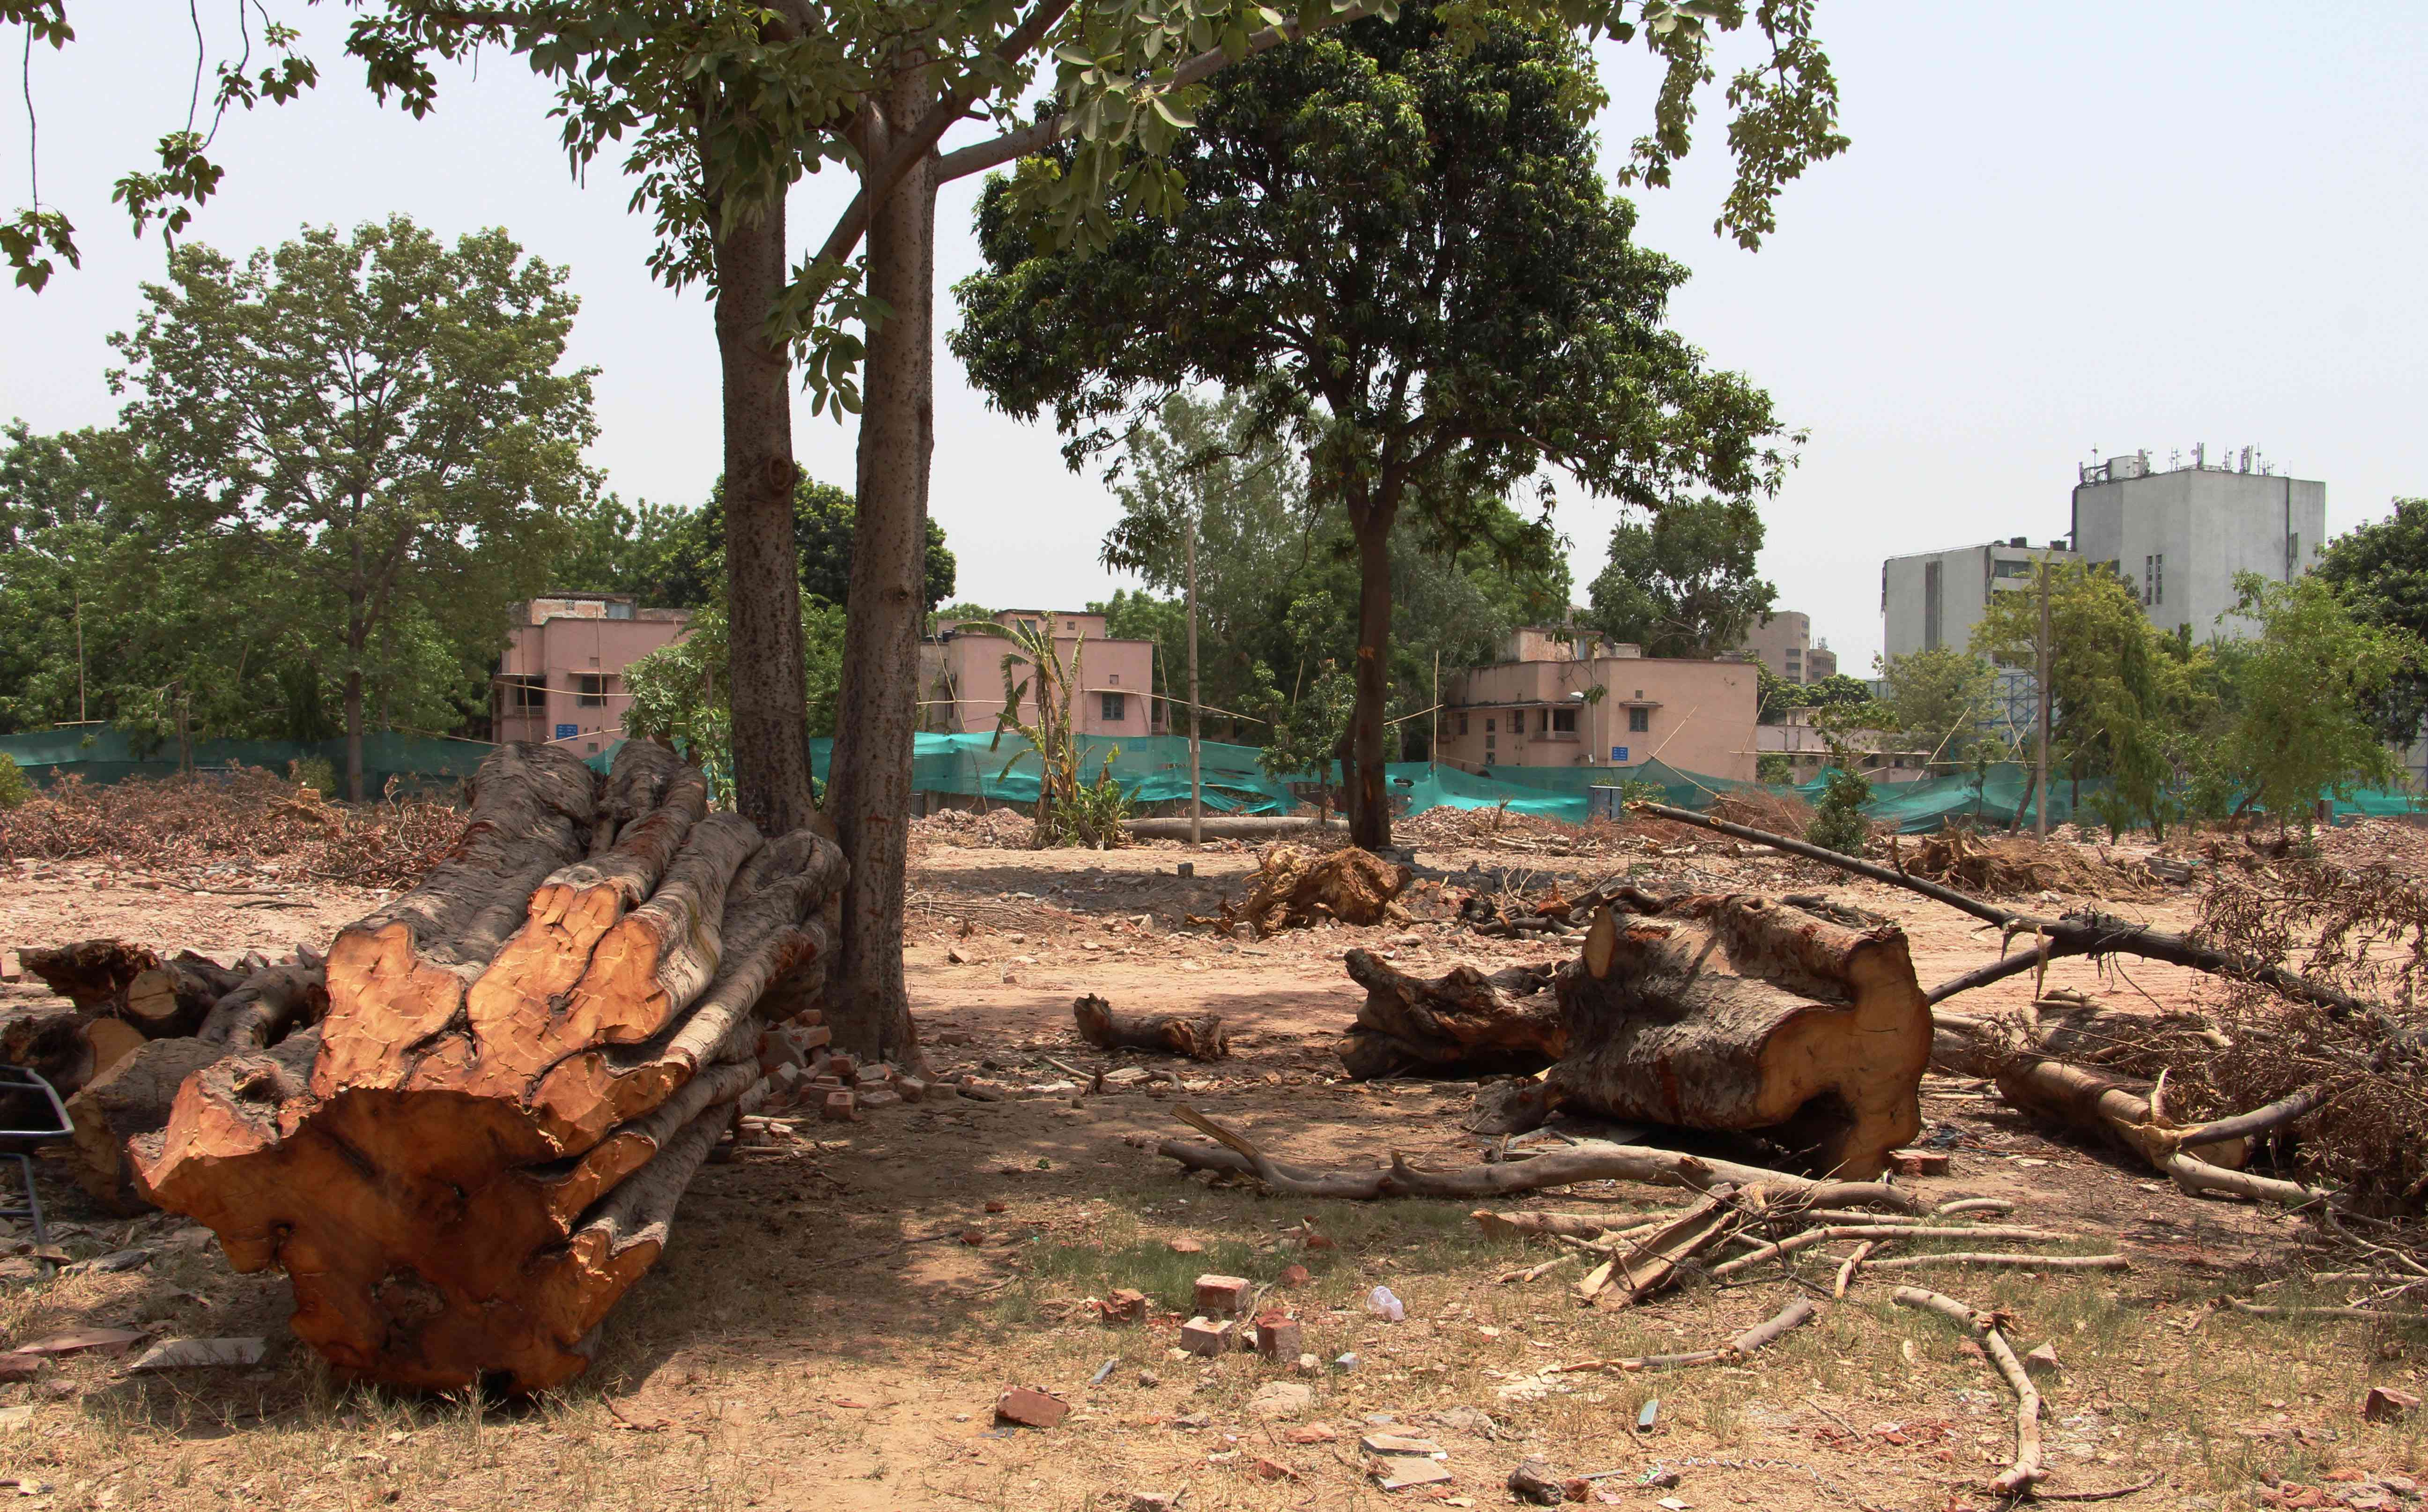 In Delhi's Netaji Nagar, a large number of trees have been felled to make space for buildings. (Photo credit: Aabid Shafi).